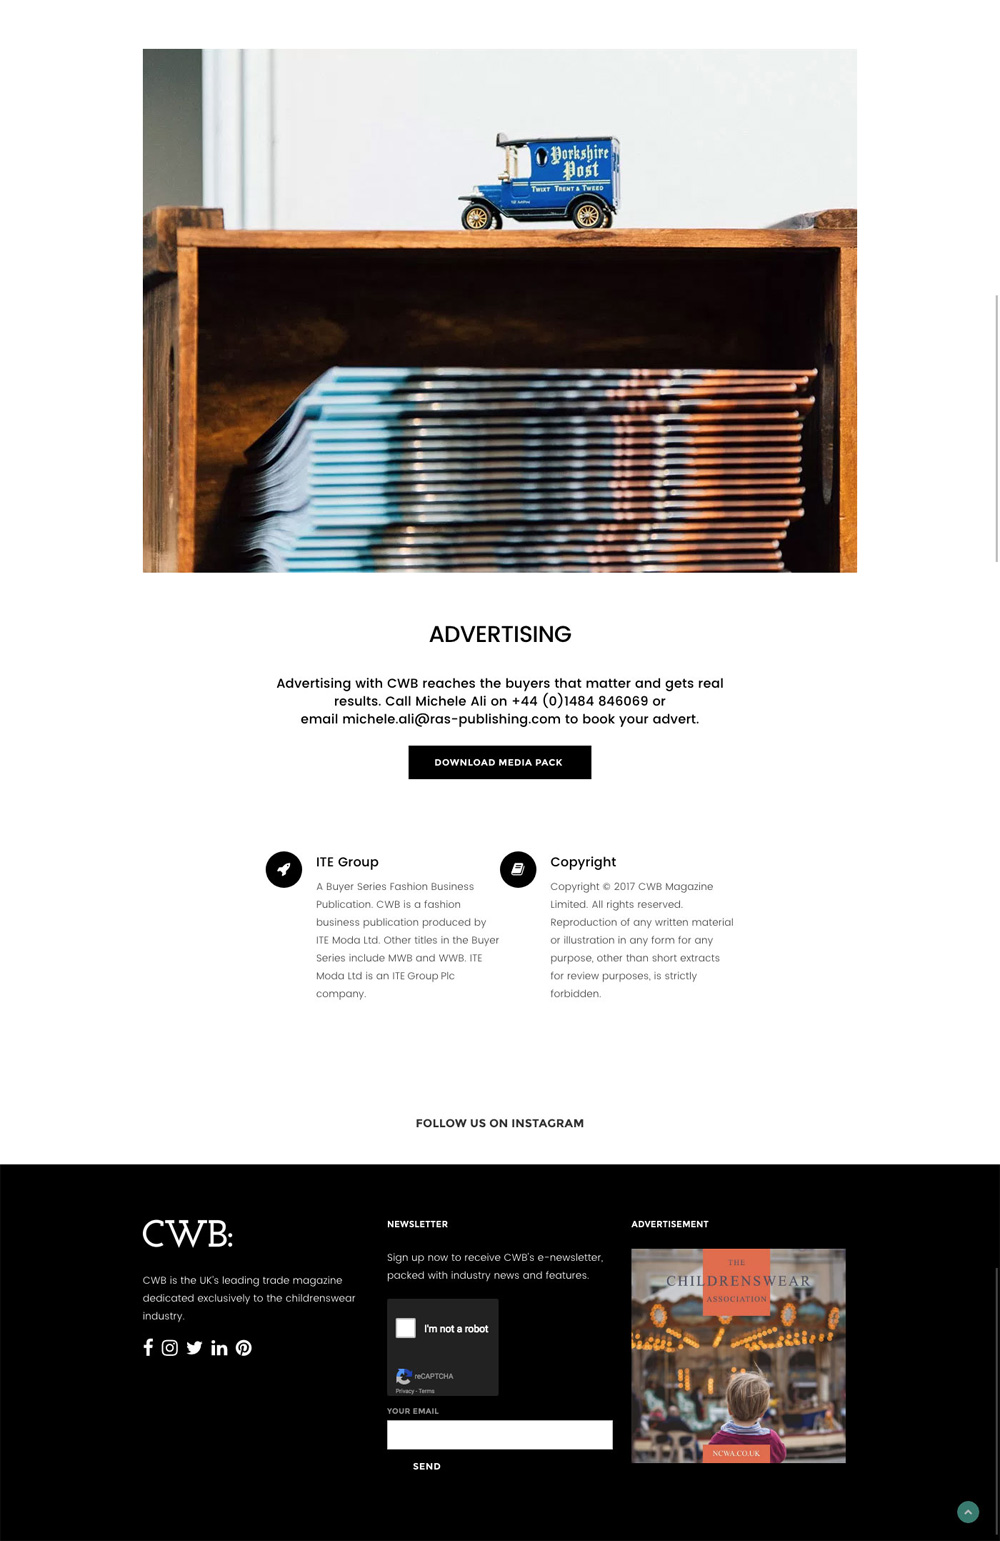 CWB Advertising page